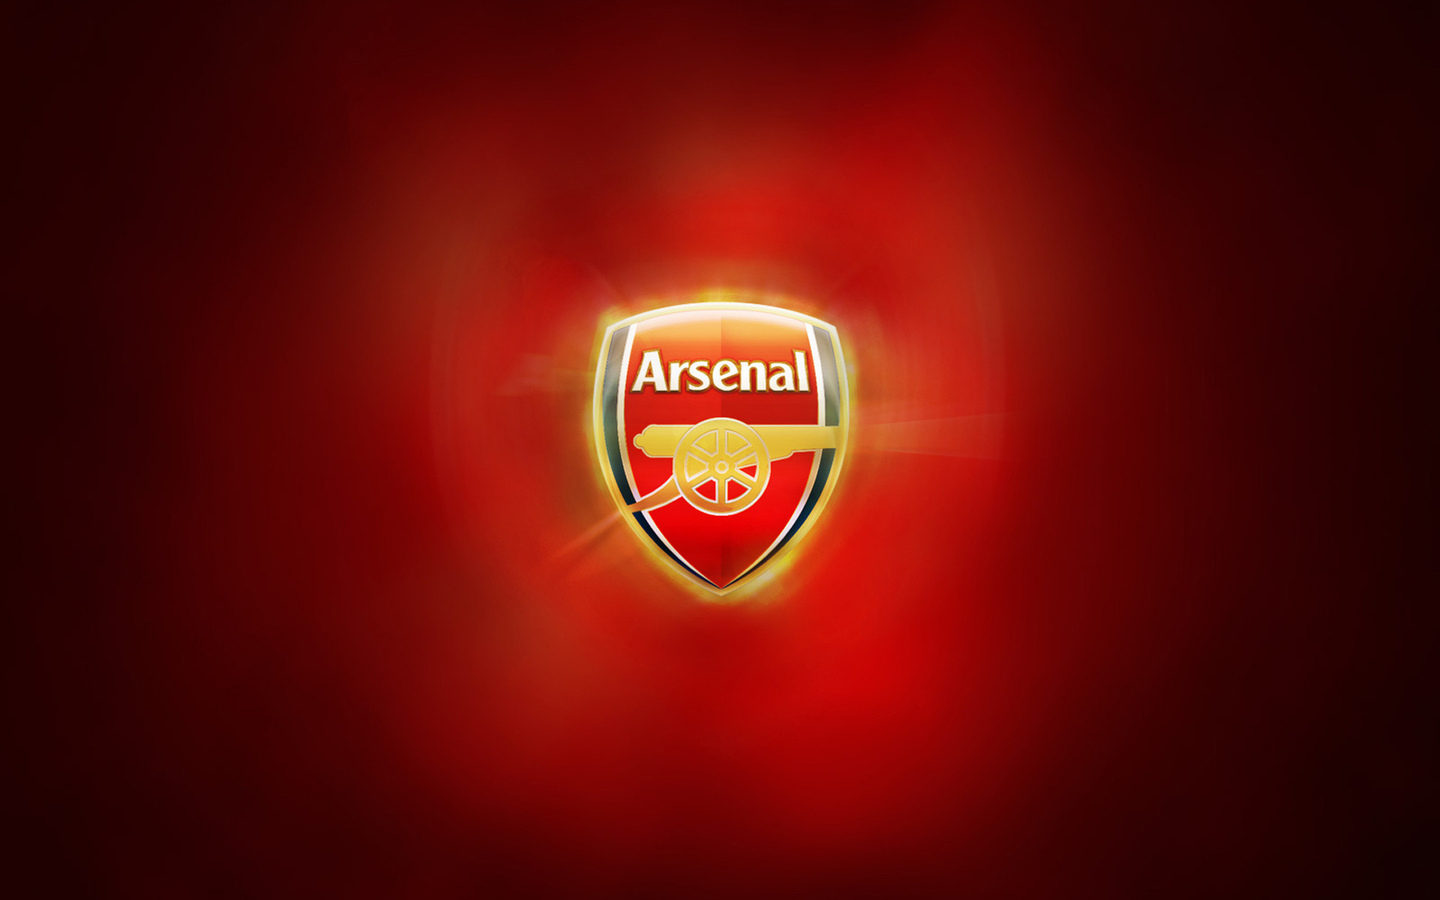 red, gold, arsenal